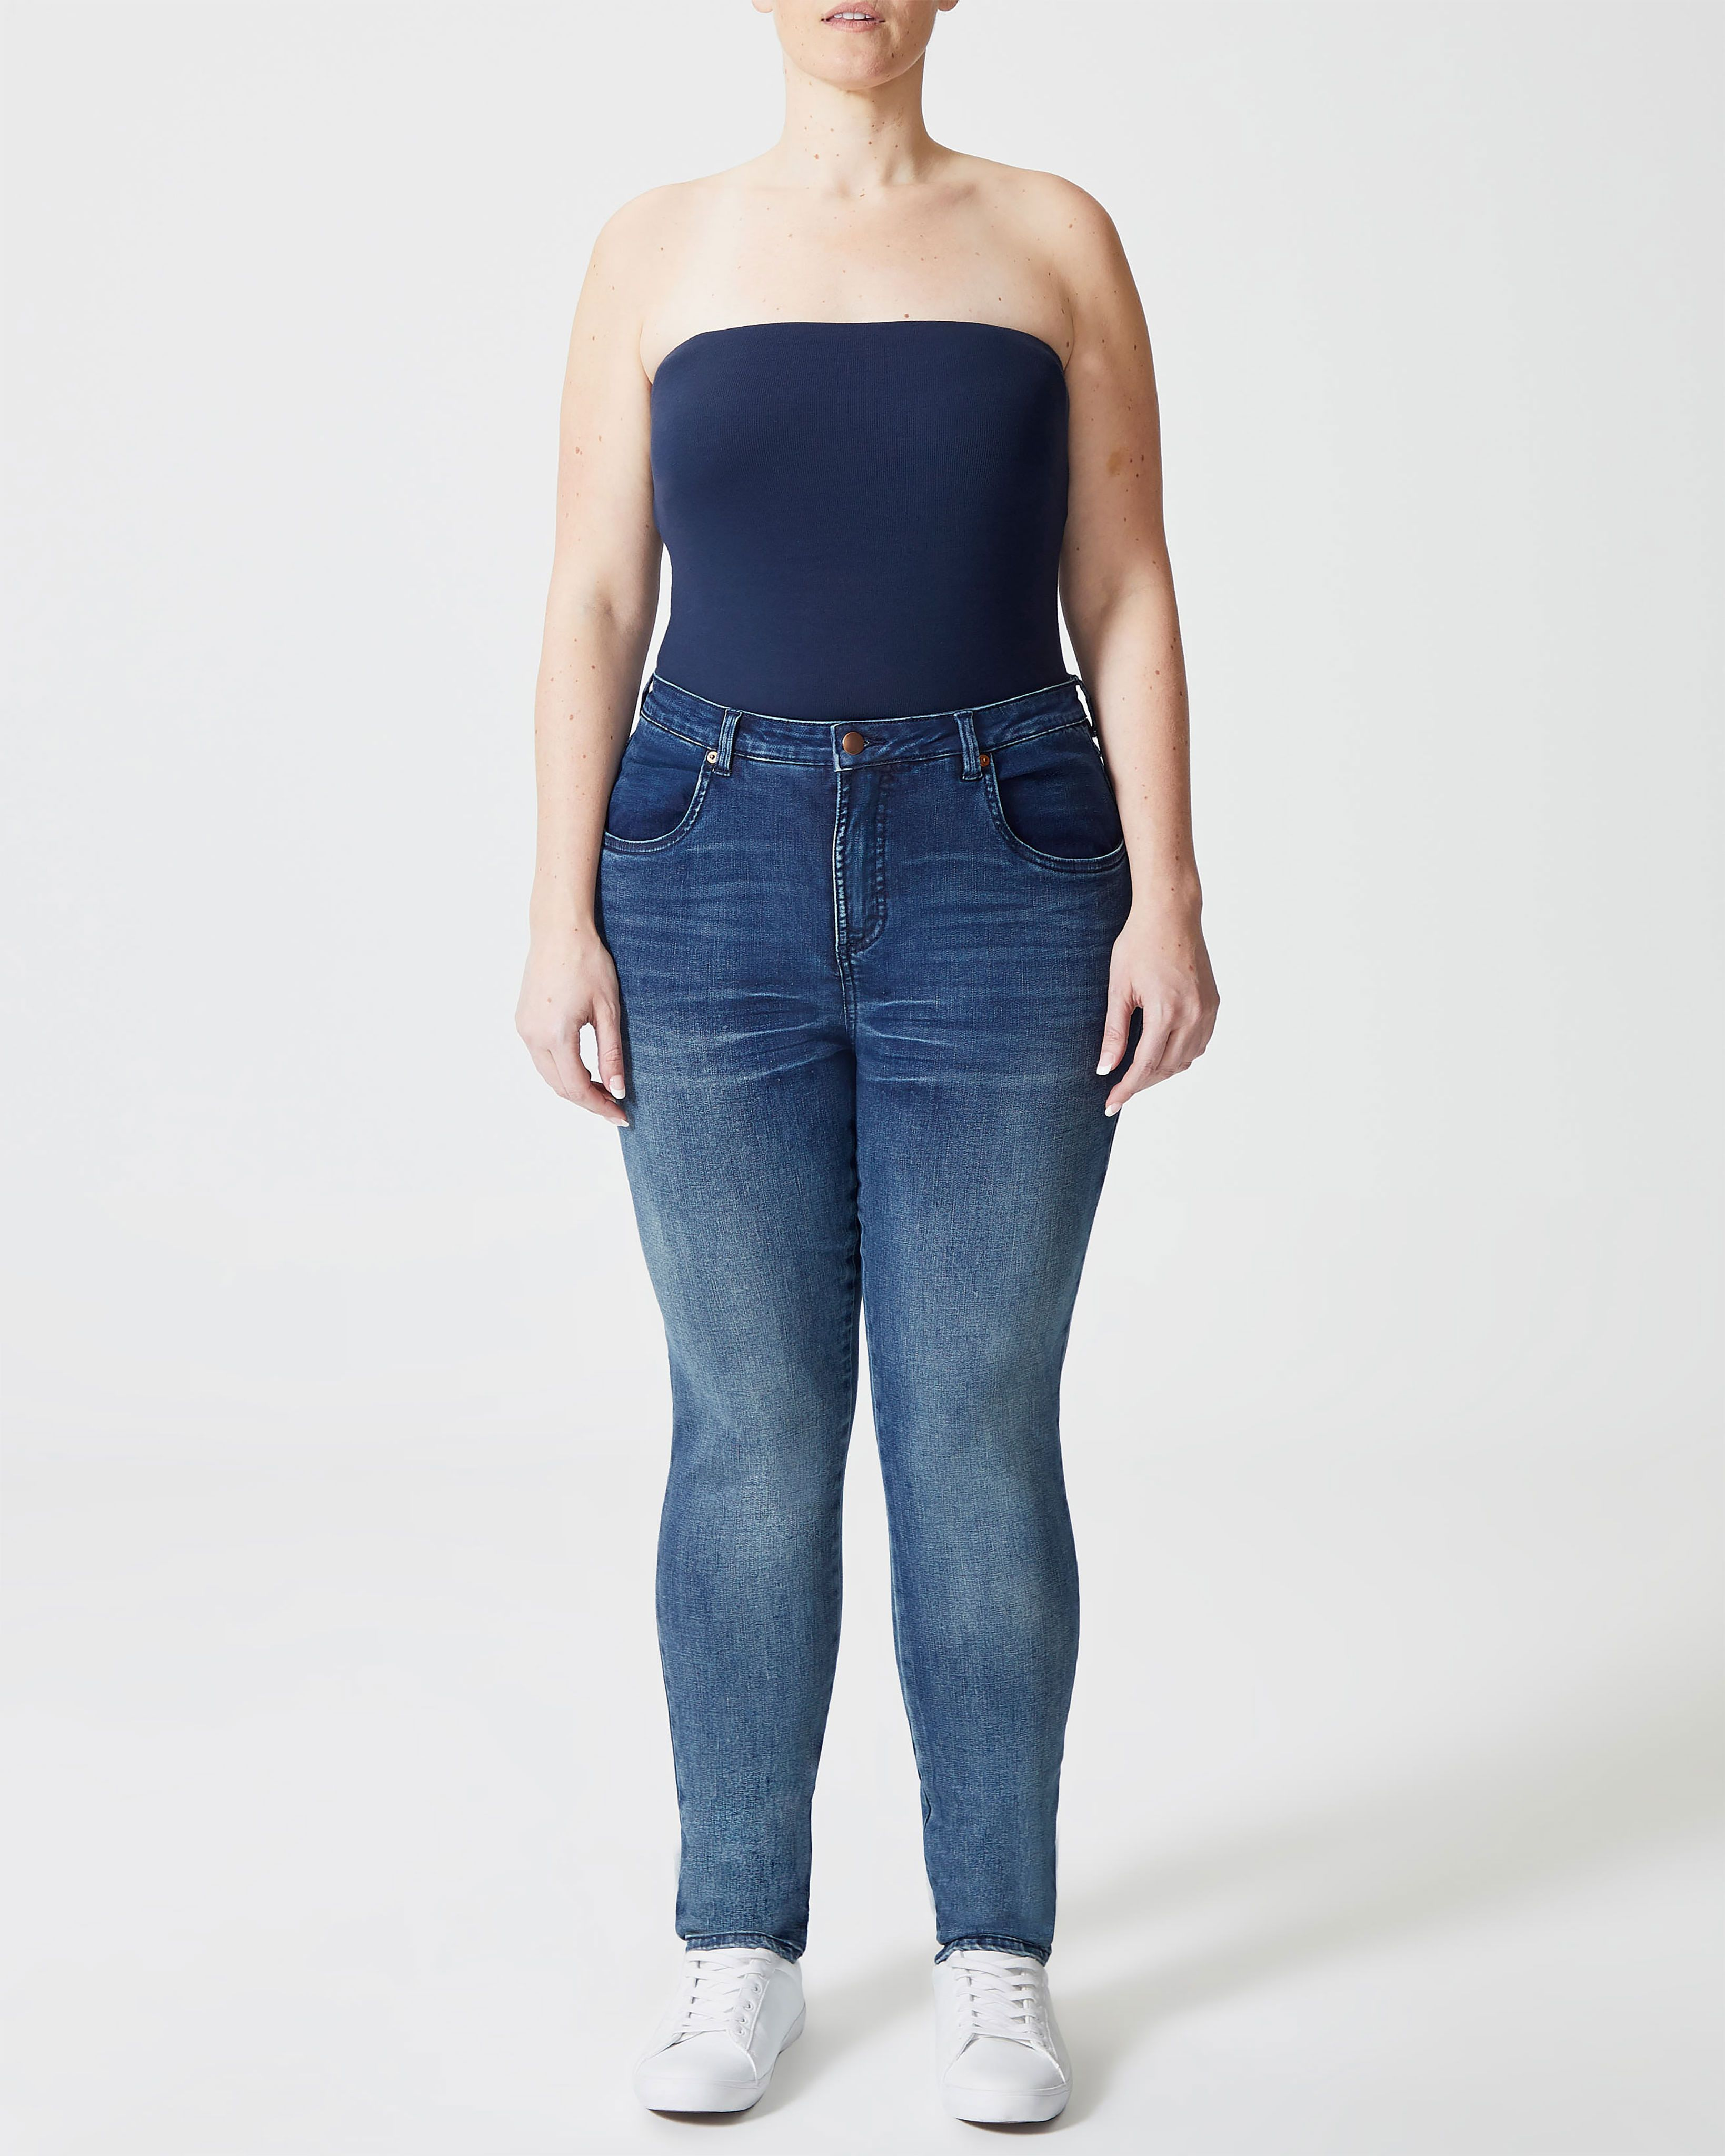 Seine High Rise Skinny Jeans 32 Inch - Distressed Blue